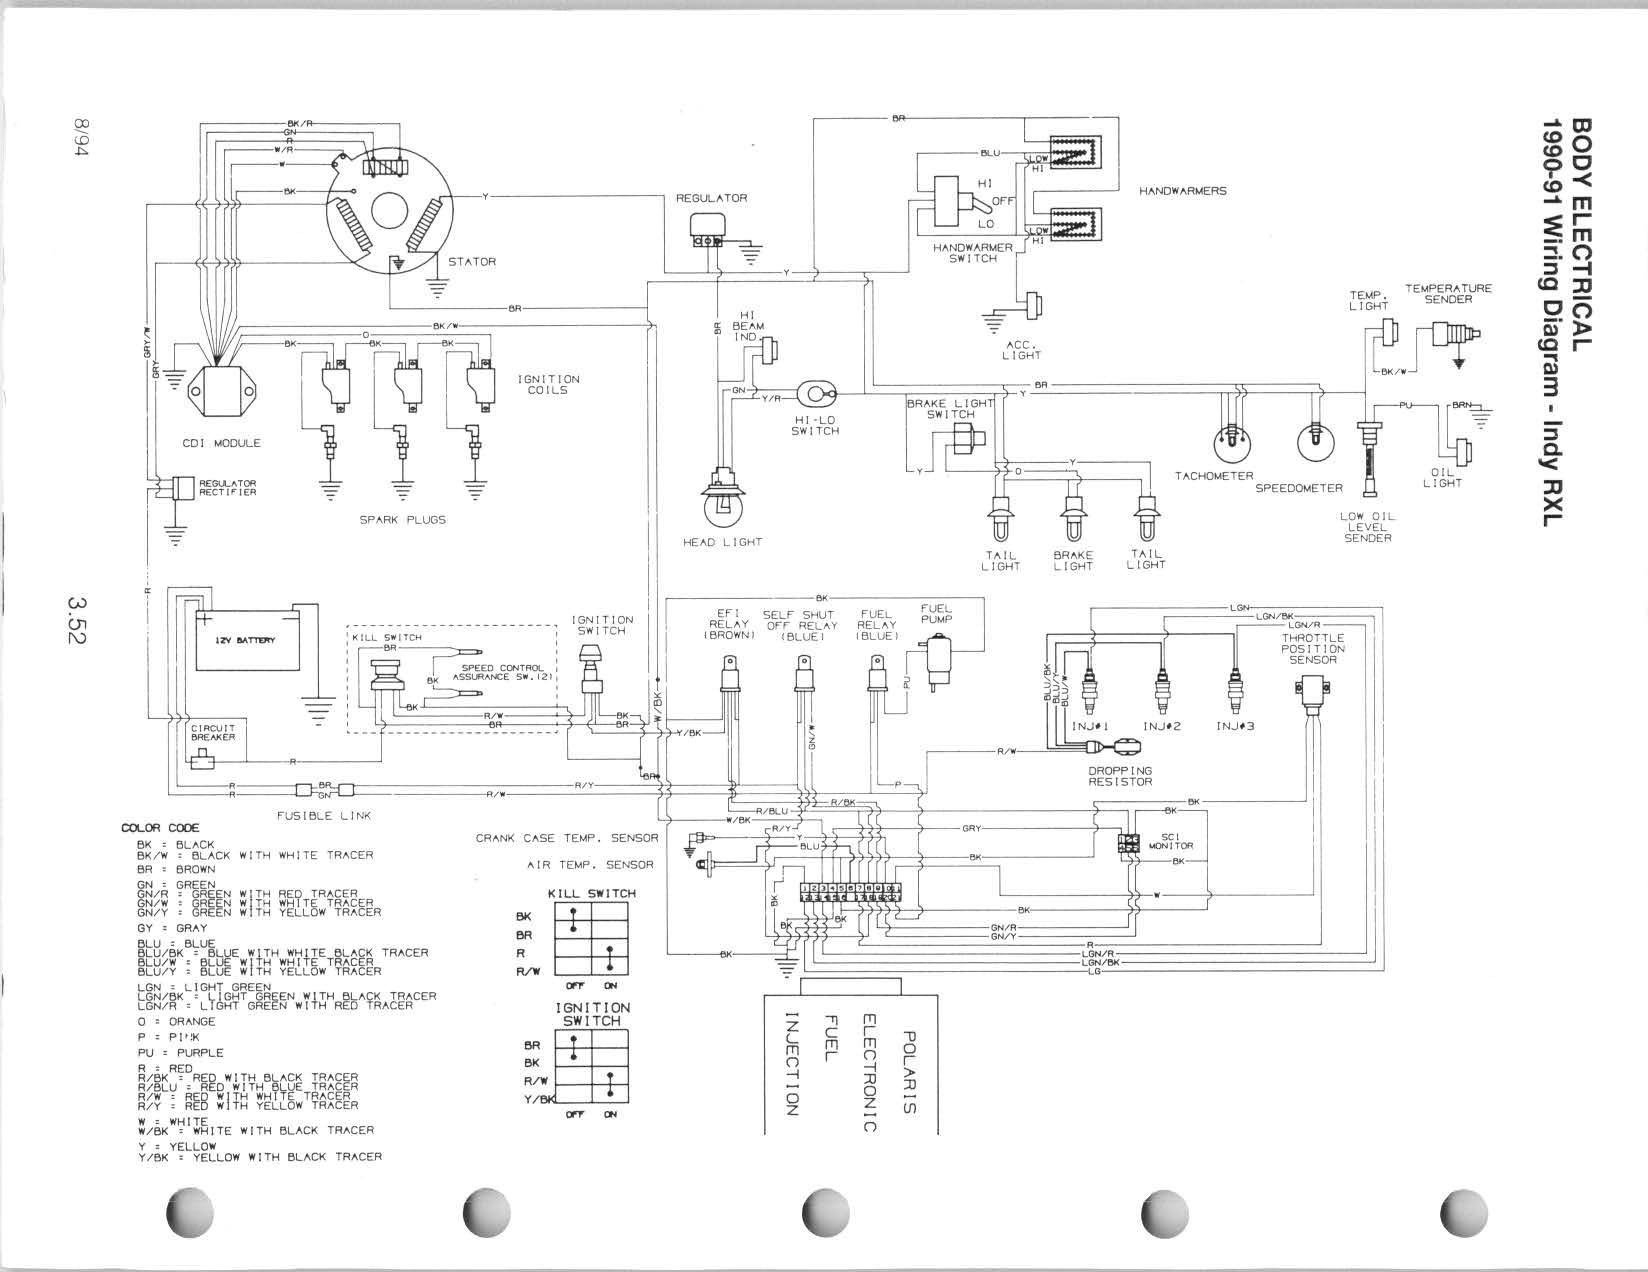 2007 Polaris Ranger 700 Xp Wiring Diagram